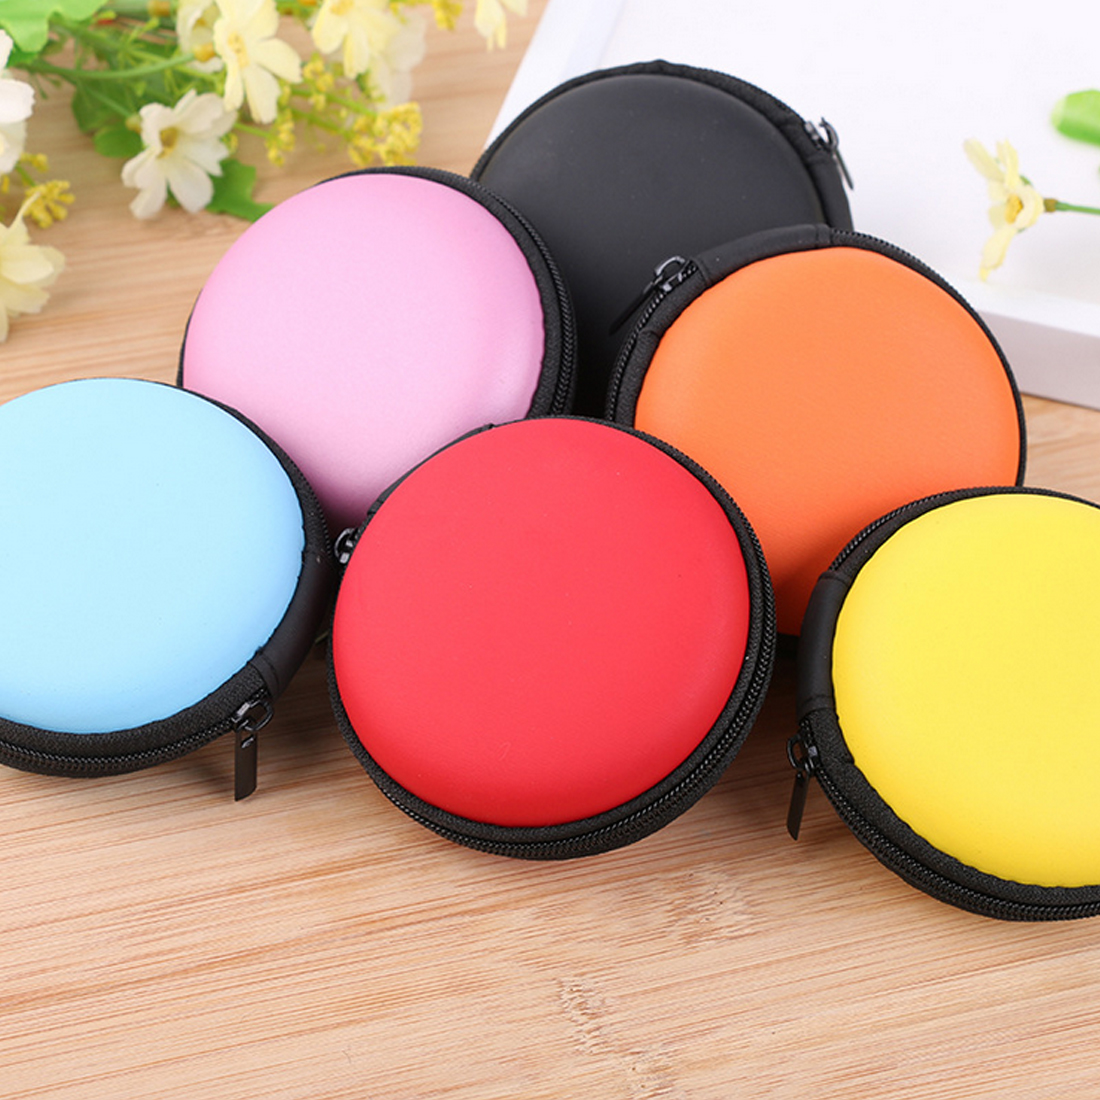 Earbud case SPINNER case Jewelry box bag SD card storage US SELLER